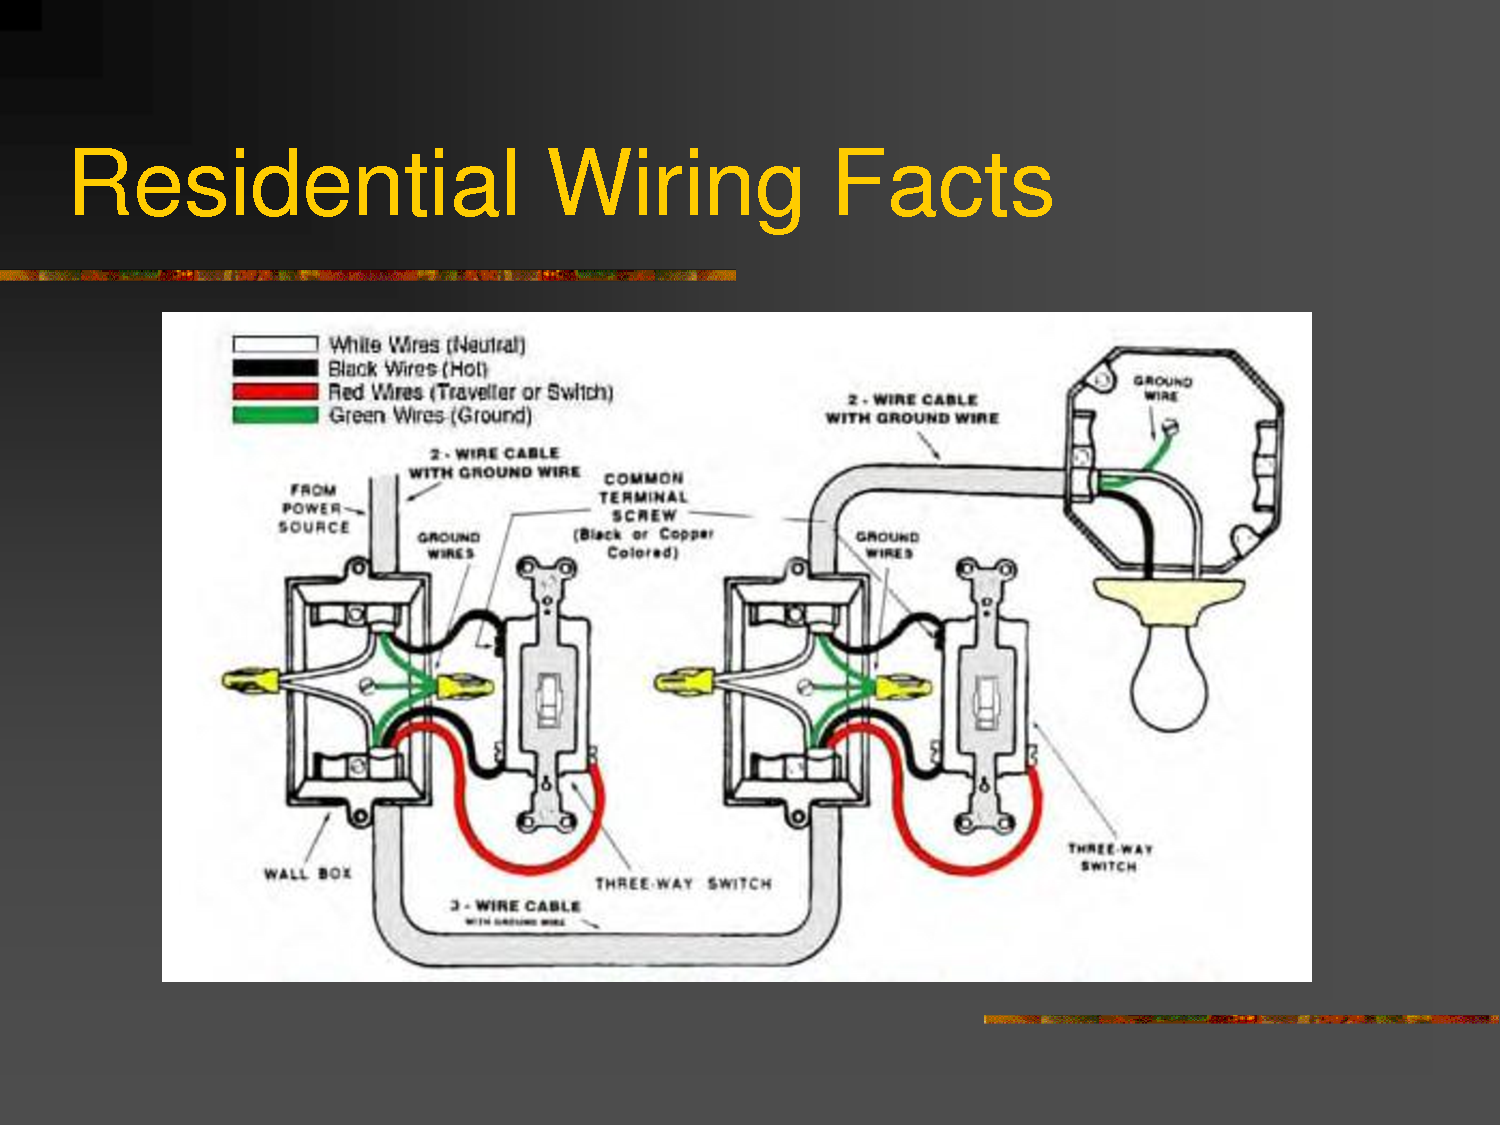 residential lighting diagrams repair manual Basic Residential Electrical Wiring Diagram